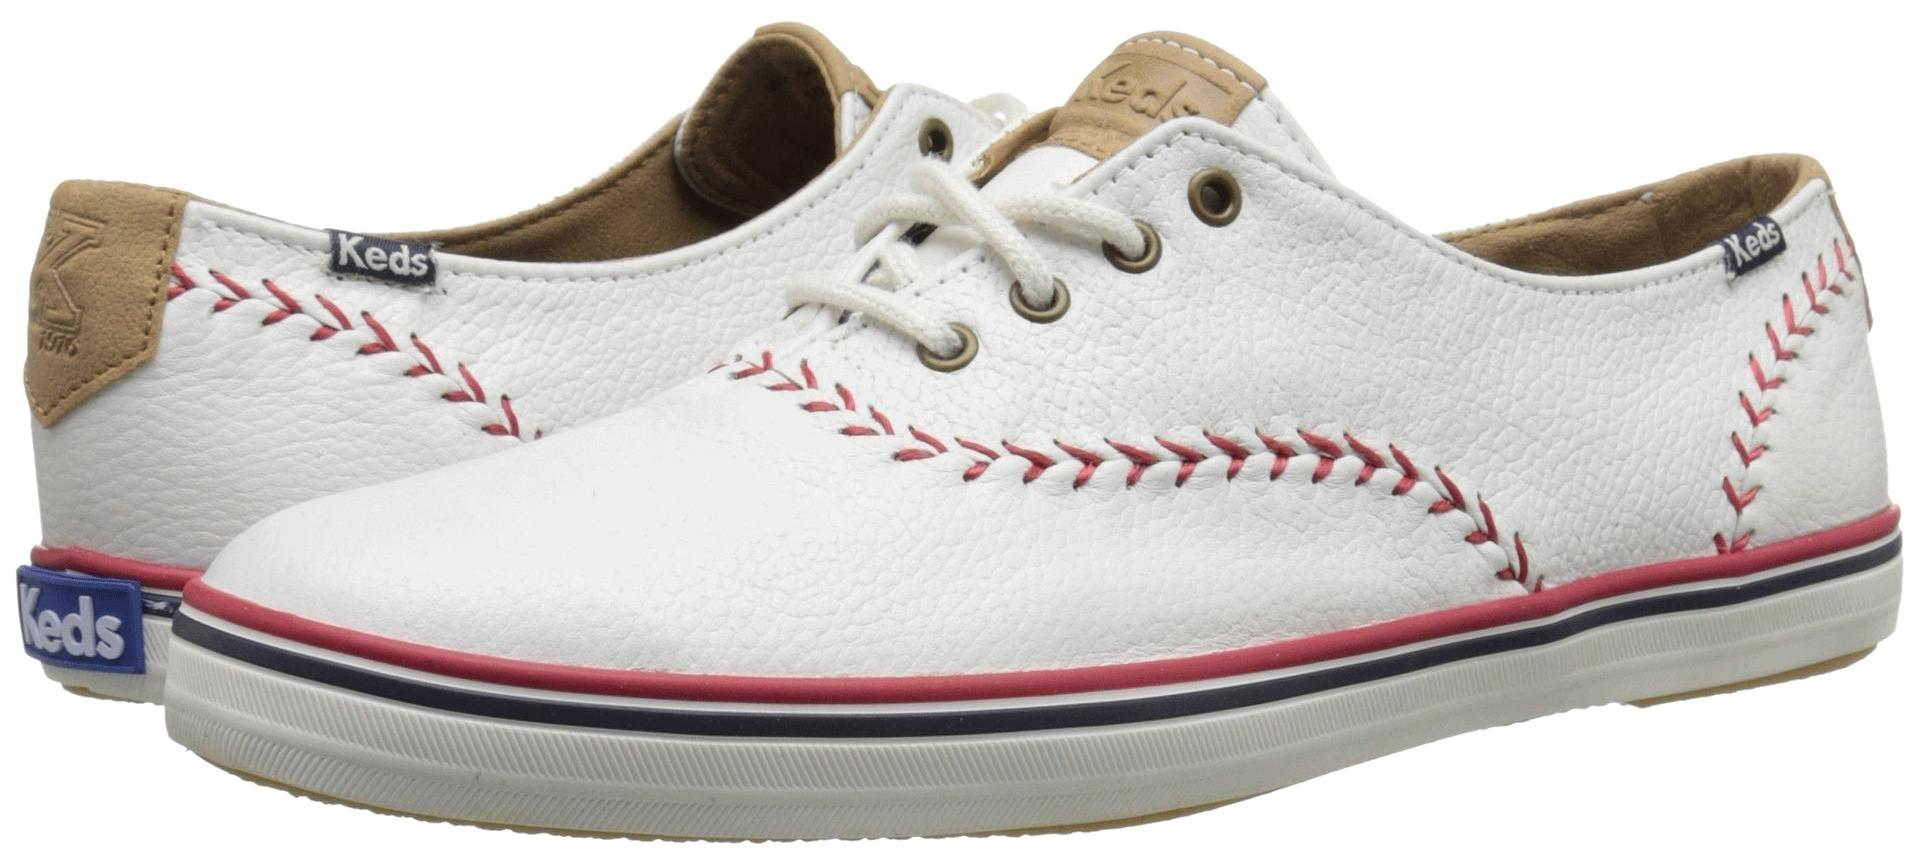 05c9e738ff0 Keds White Leather